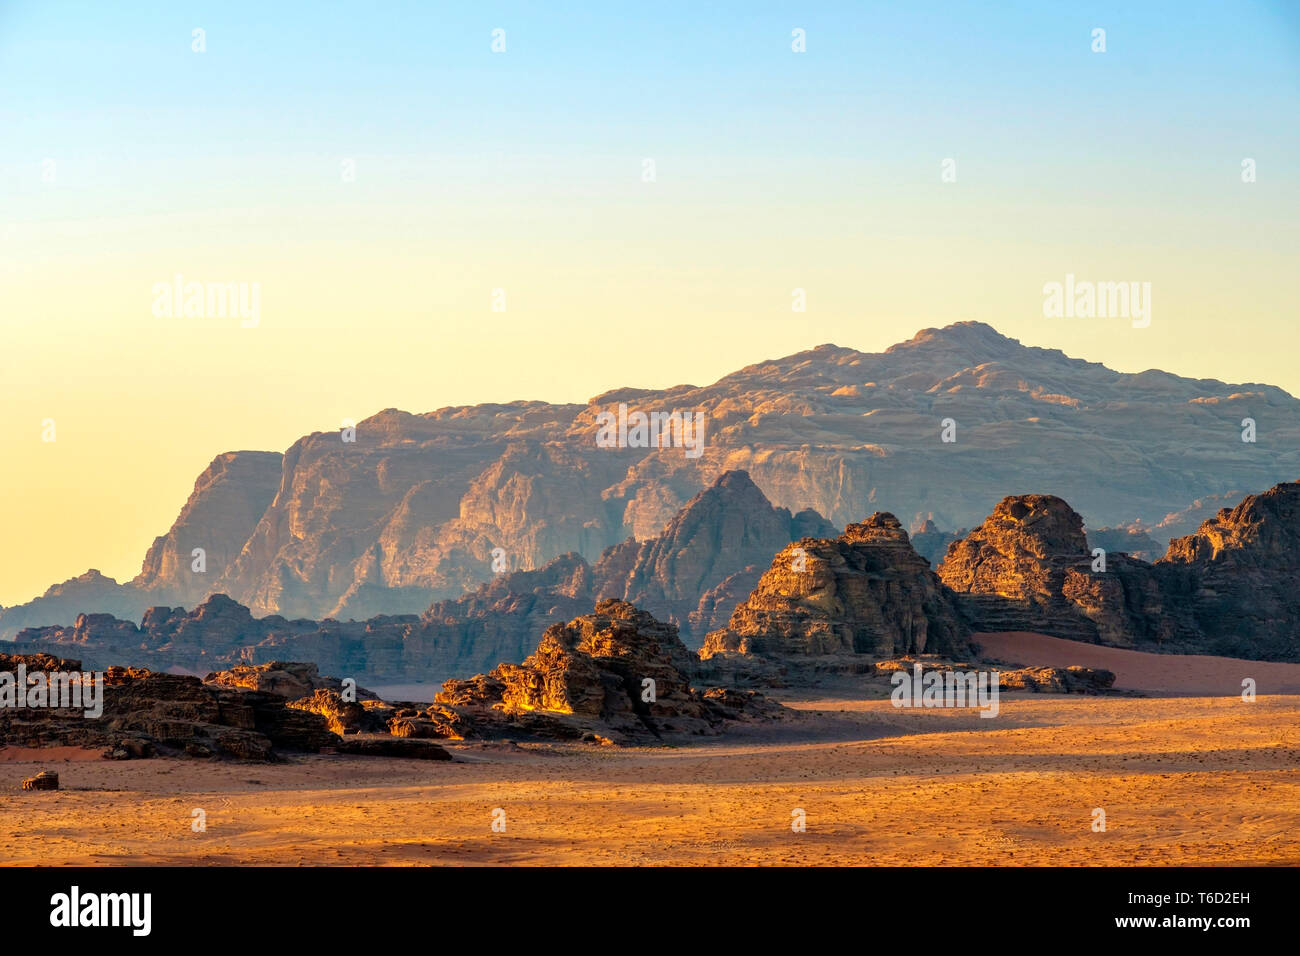 Jordan, Aqaba Governorate, Wadi Rum. Wadi Rum Protected Area, UNESCO World Heritage Site. Desert landscape at sunset. - Stock Image